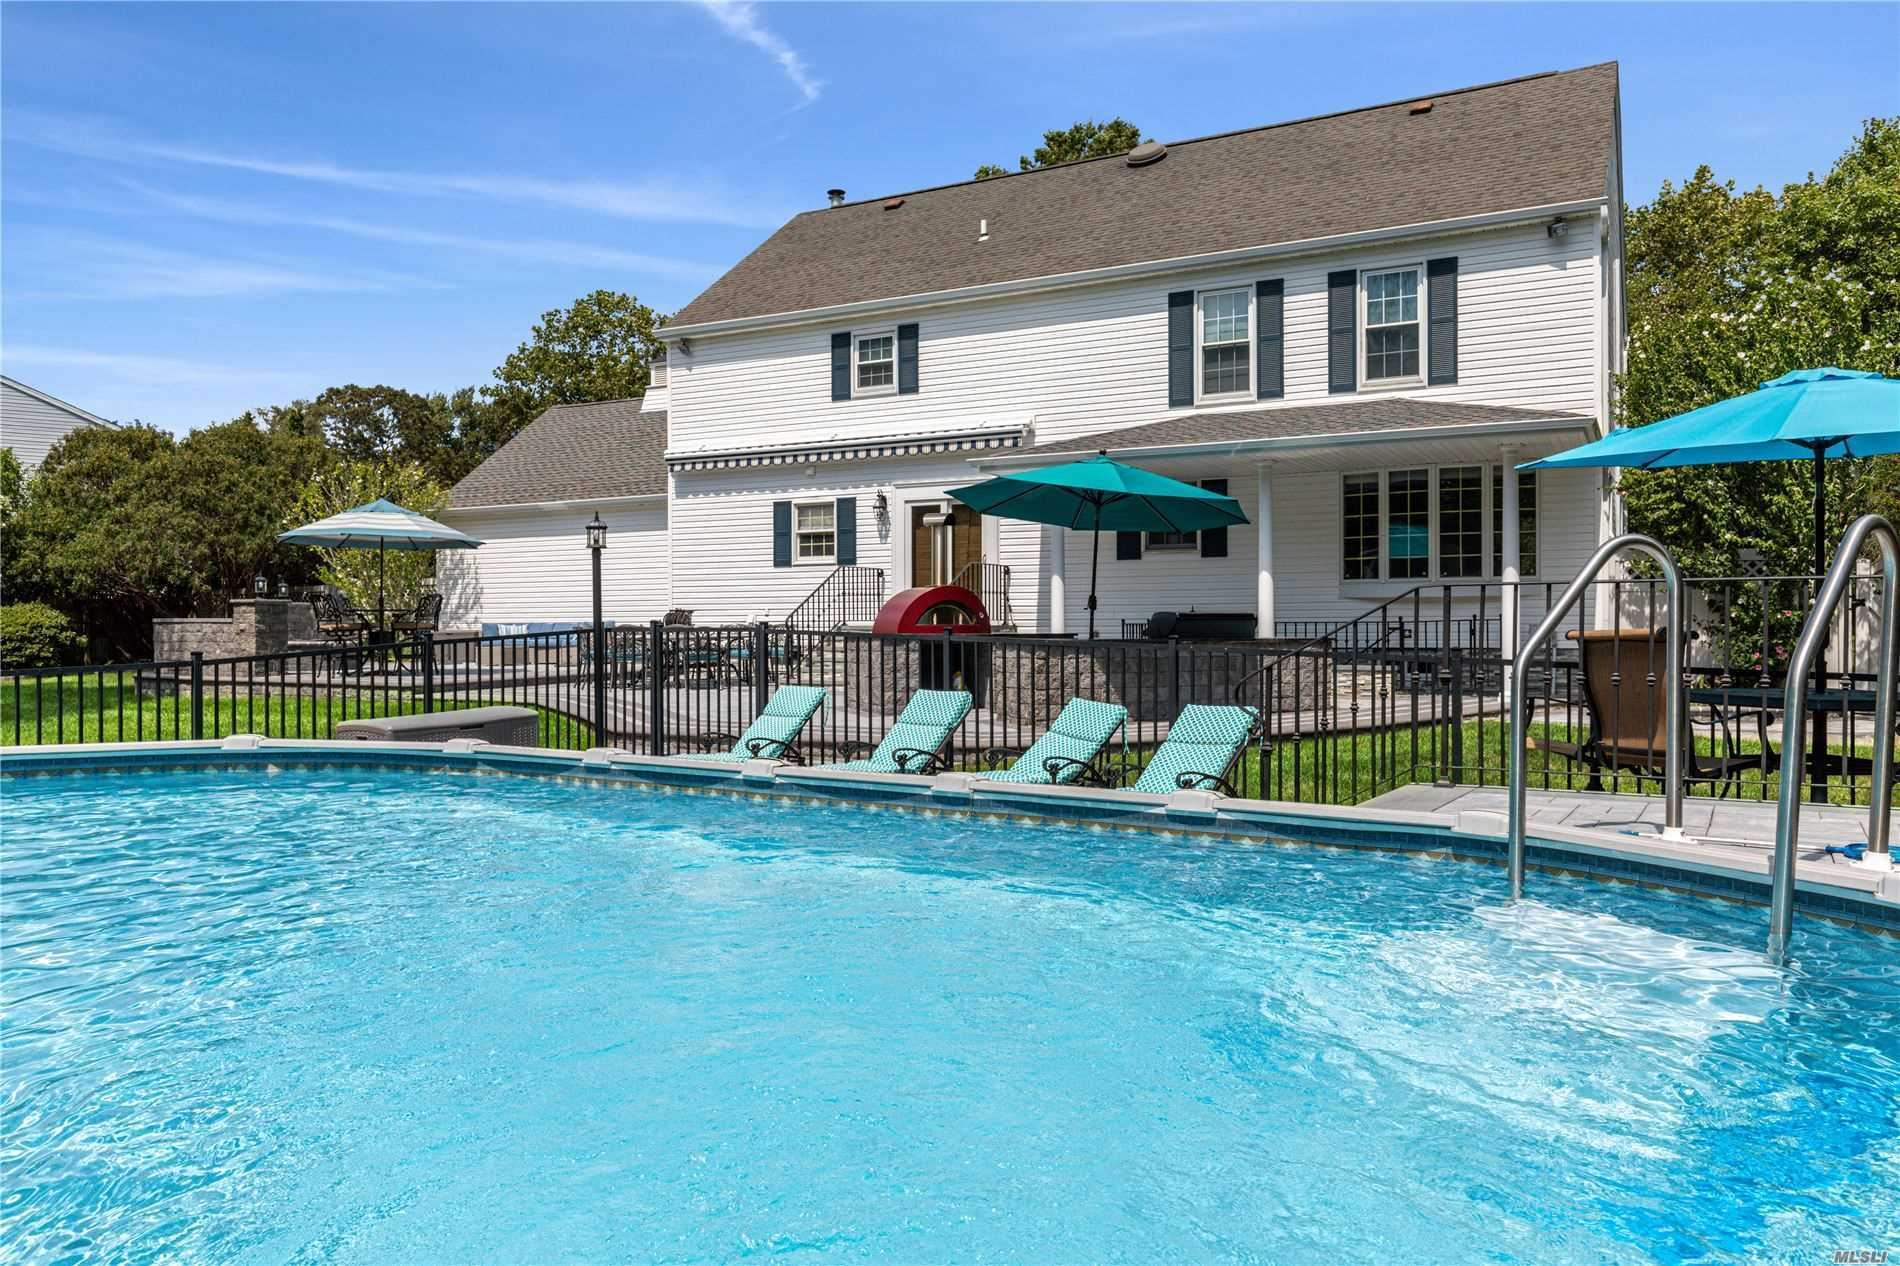 125 Timothy Lane, Jamesport, NY 11947 - MLS#: 3241984